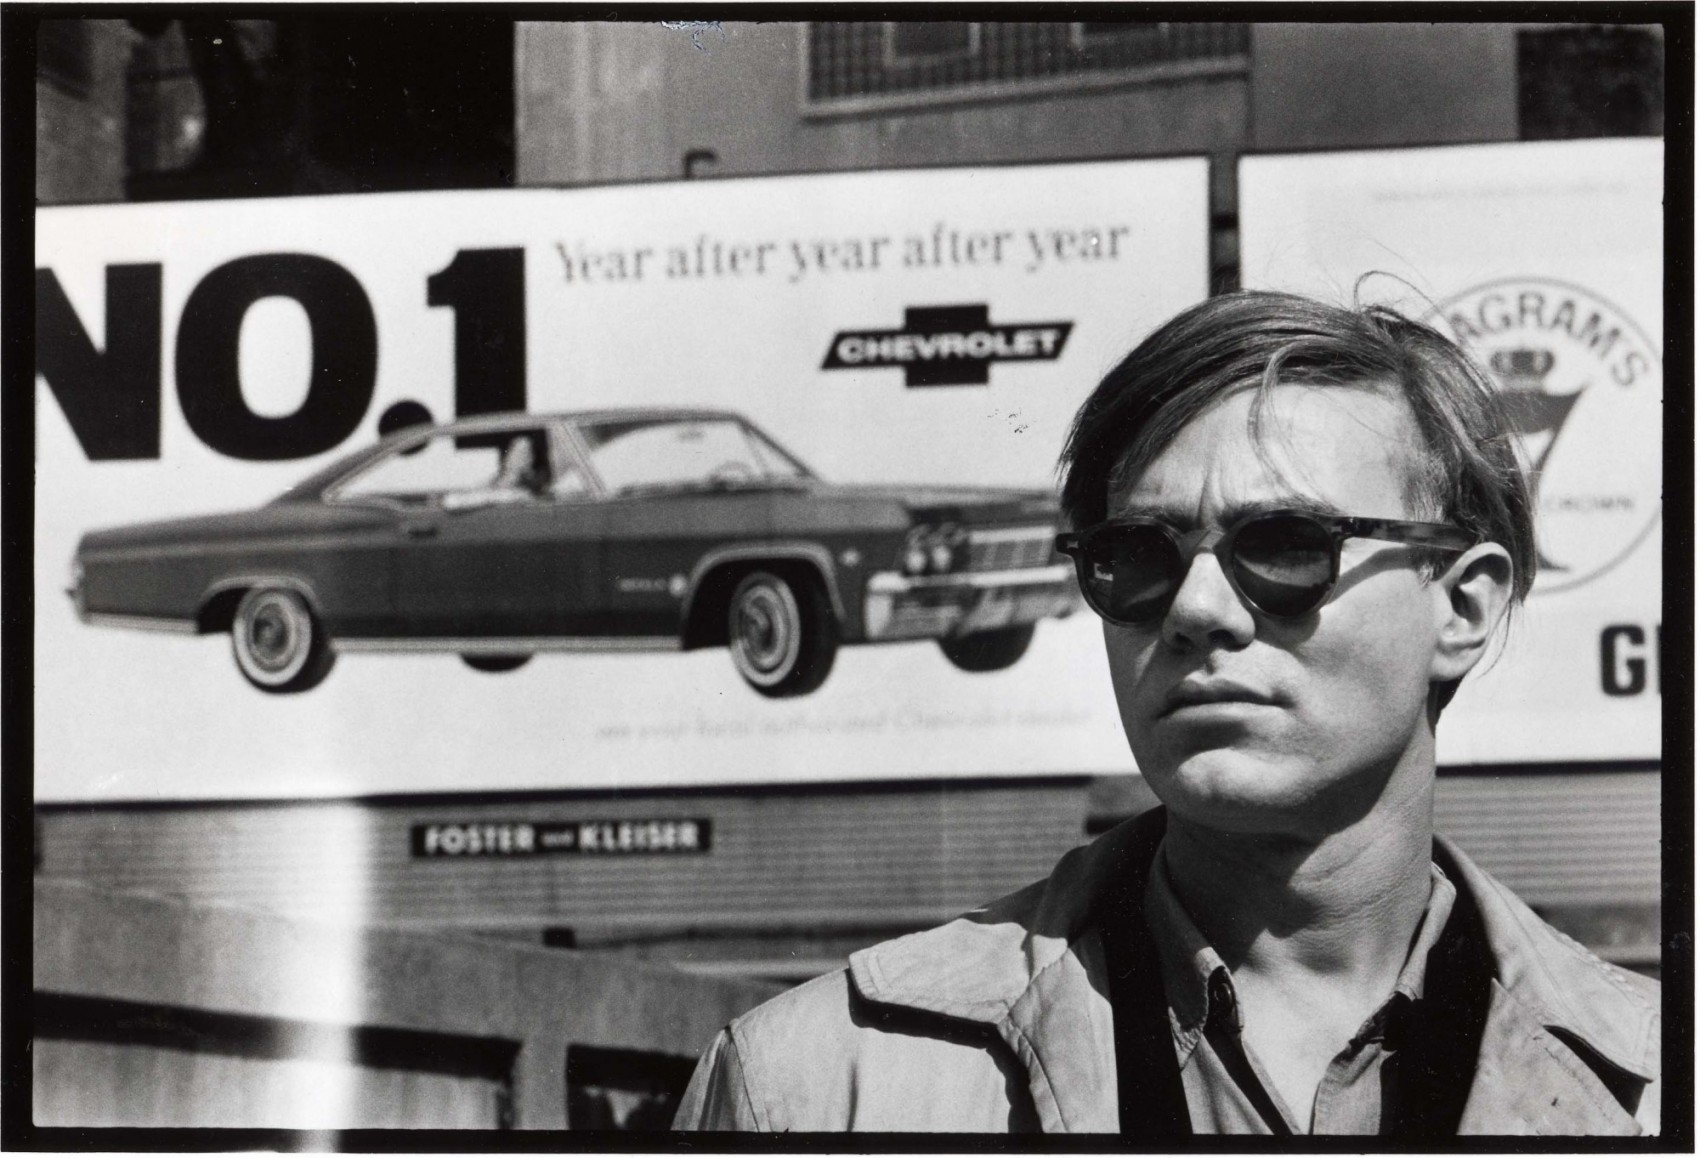 Andy Warhol at the Factory, New-York City, 1964, photo by David McCabe